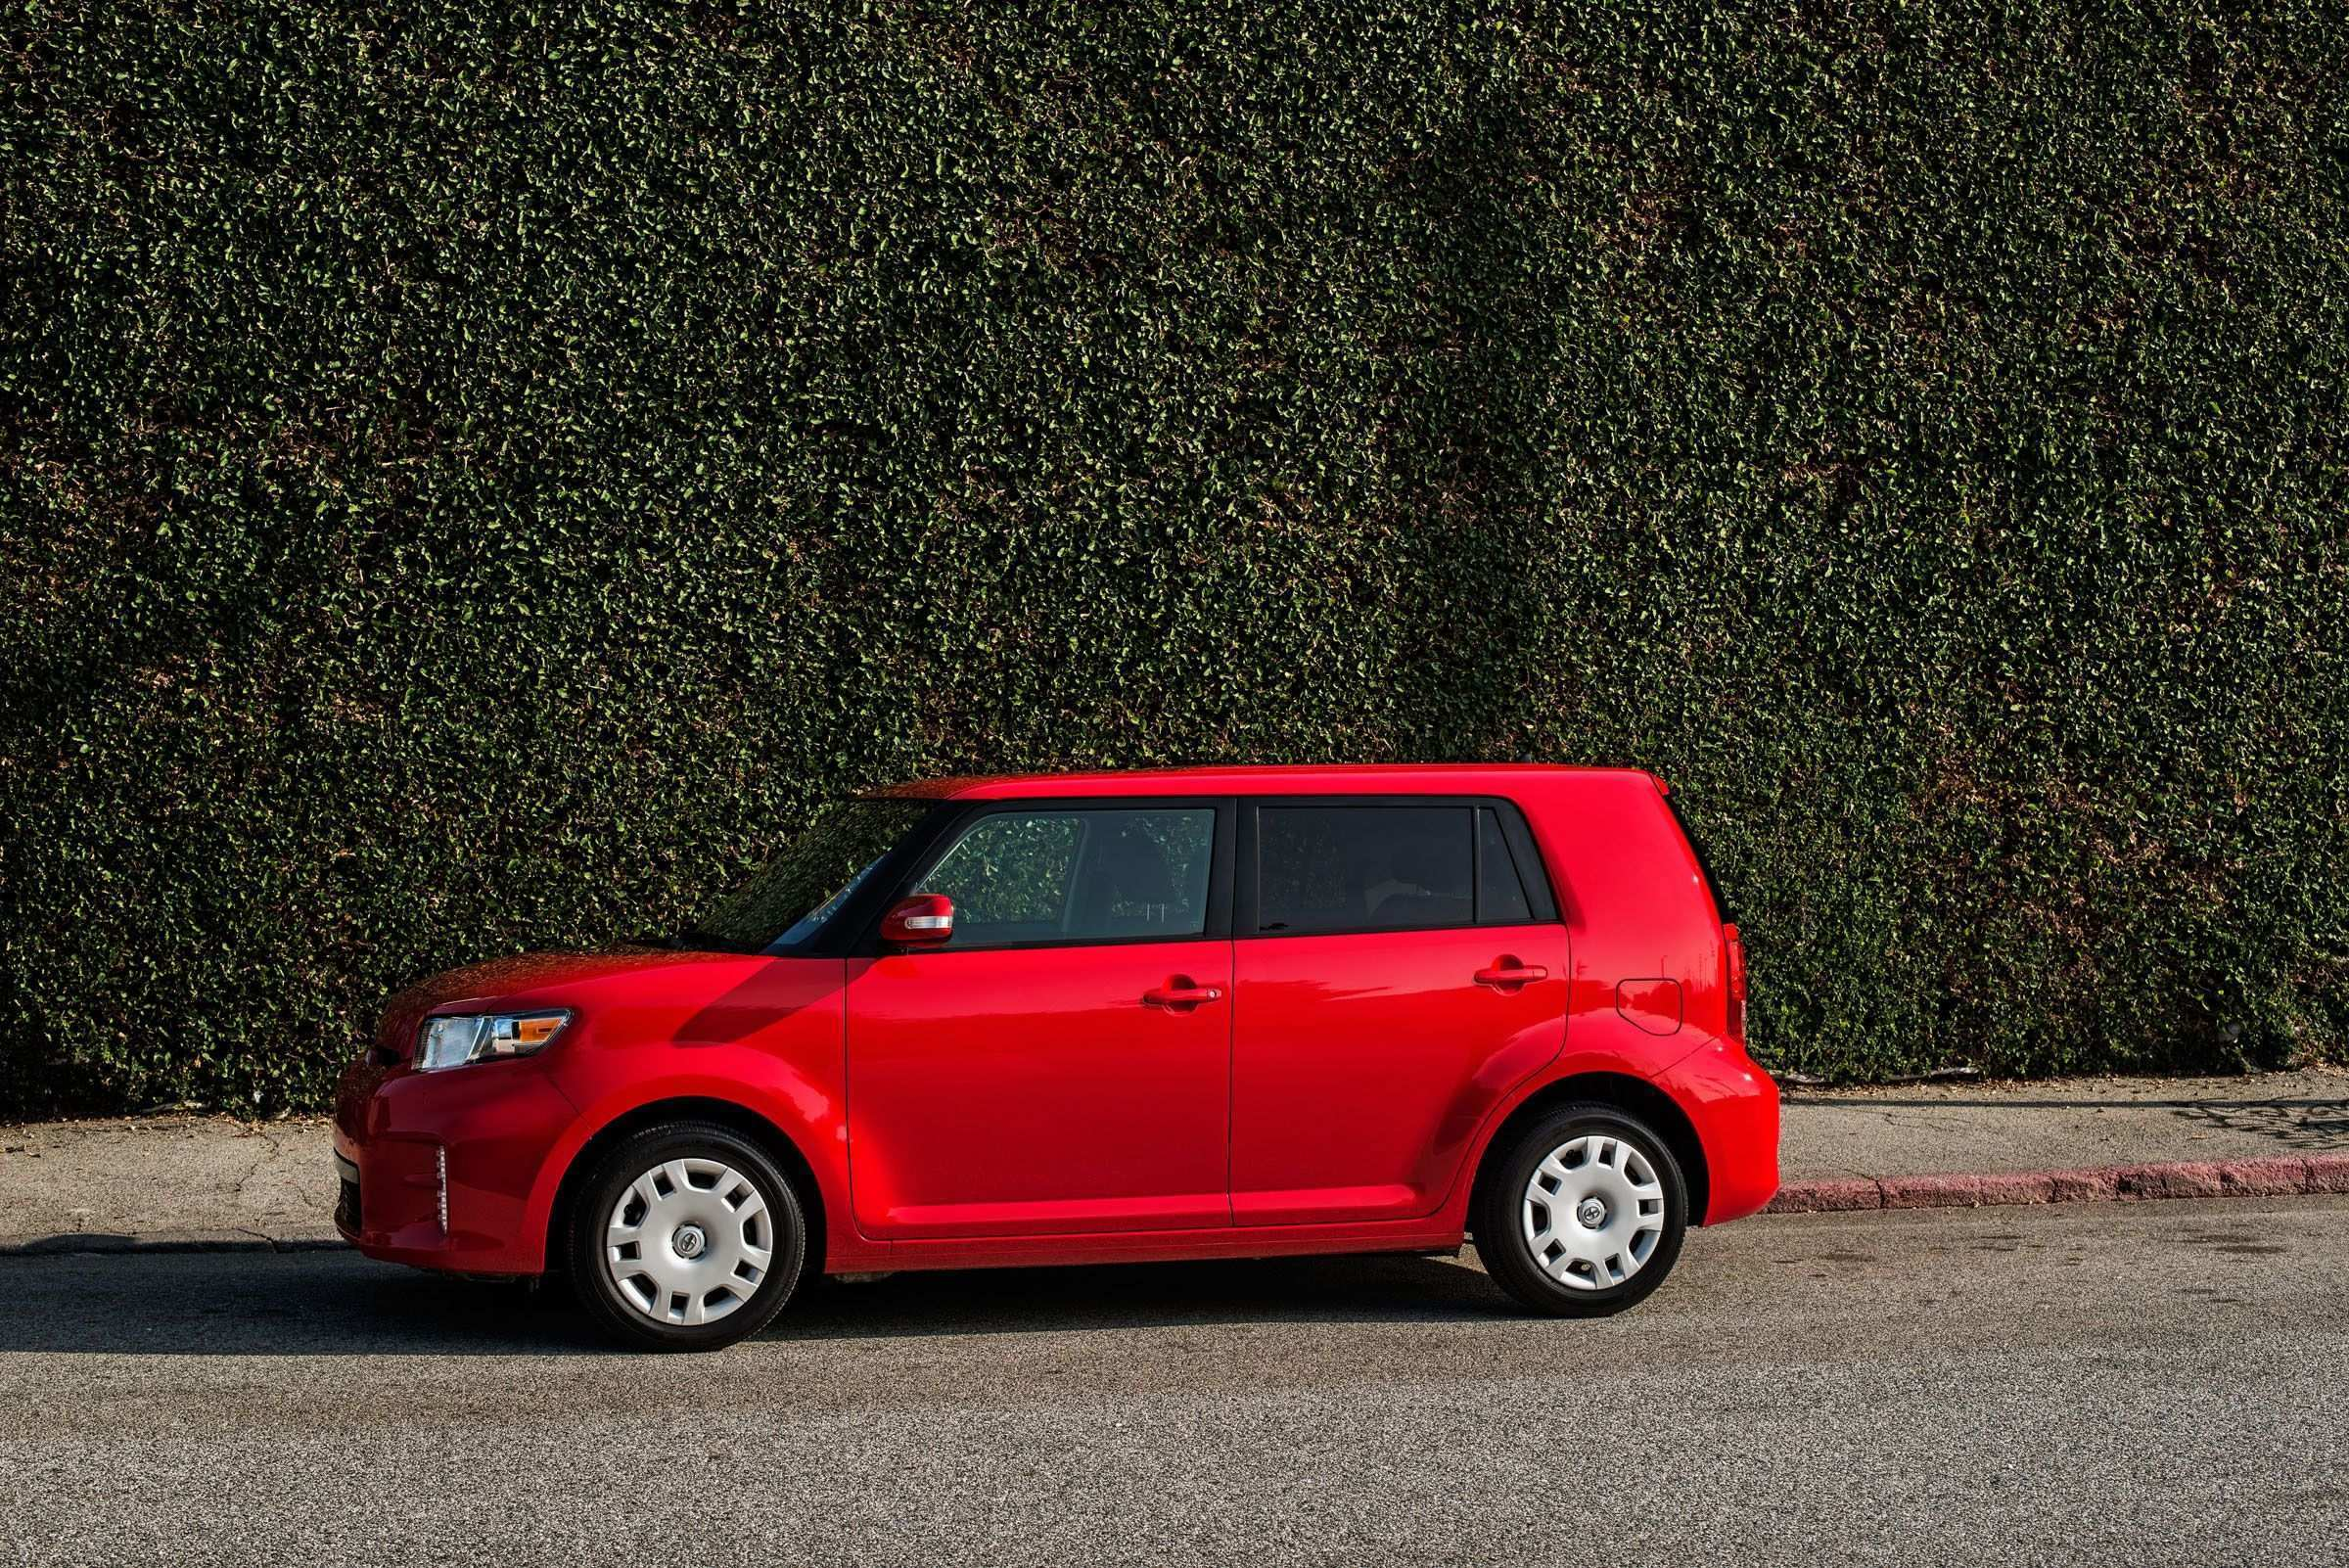 30 All New 2020 Scion XB History with 2020 Scion XB